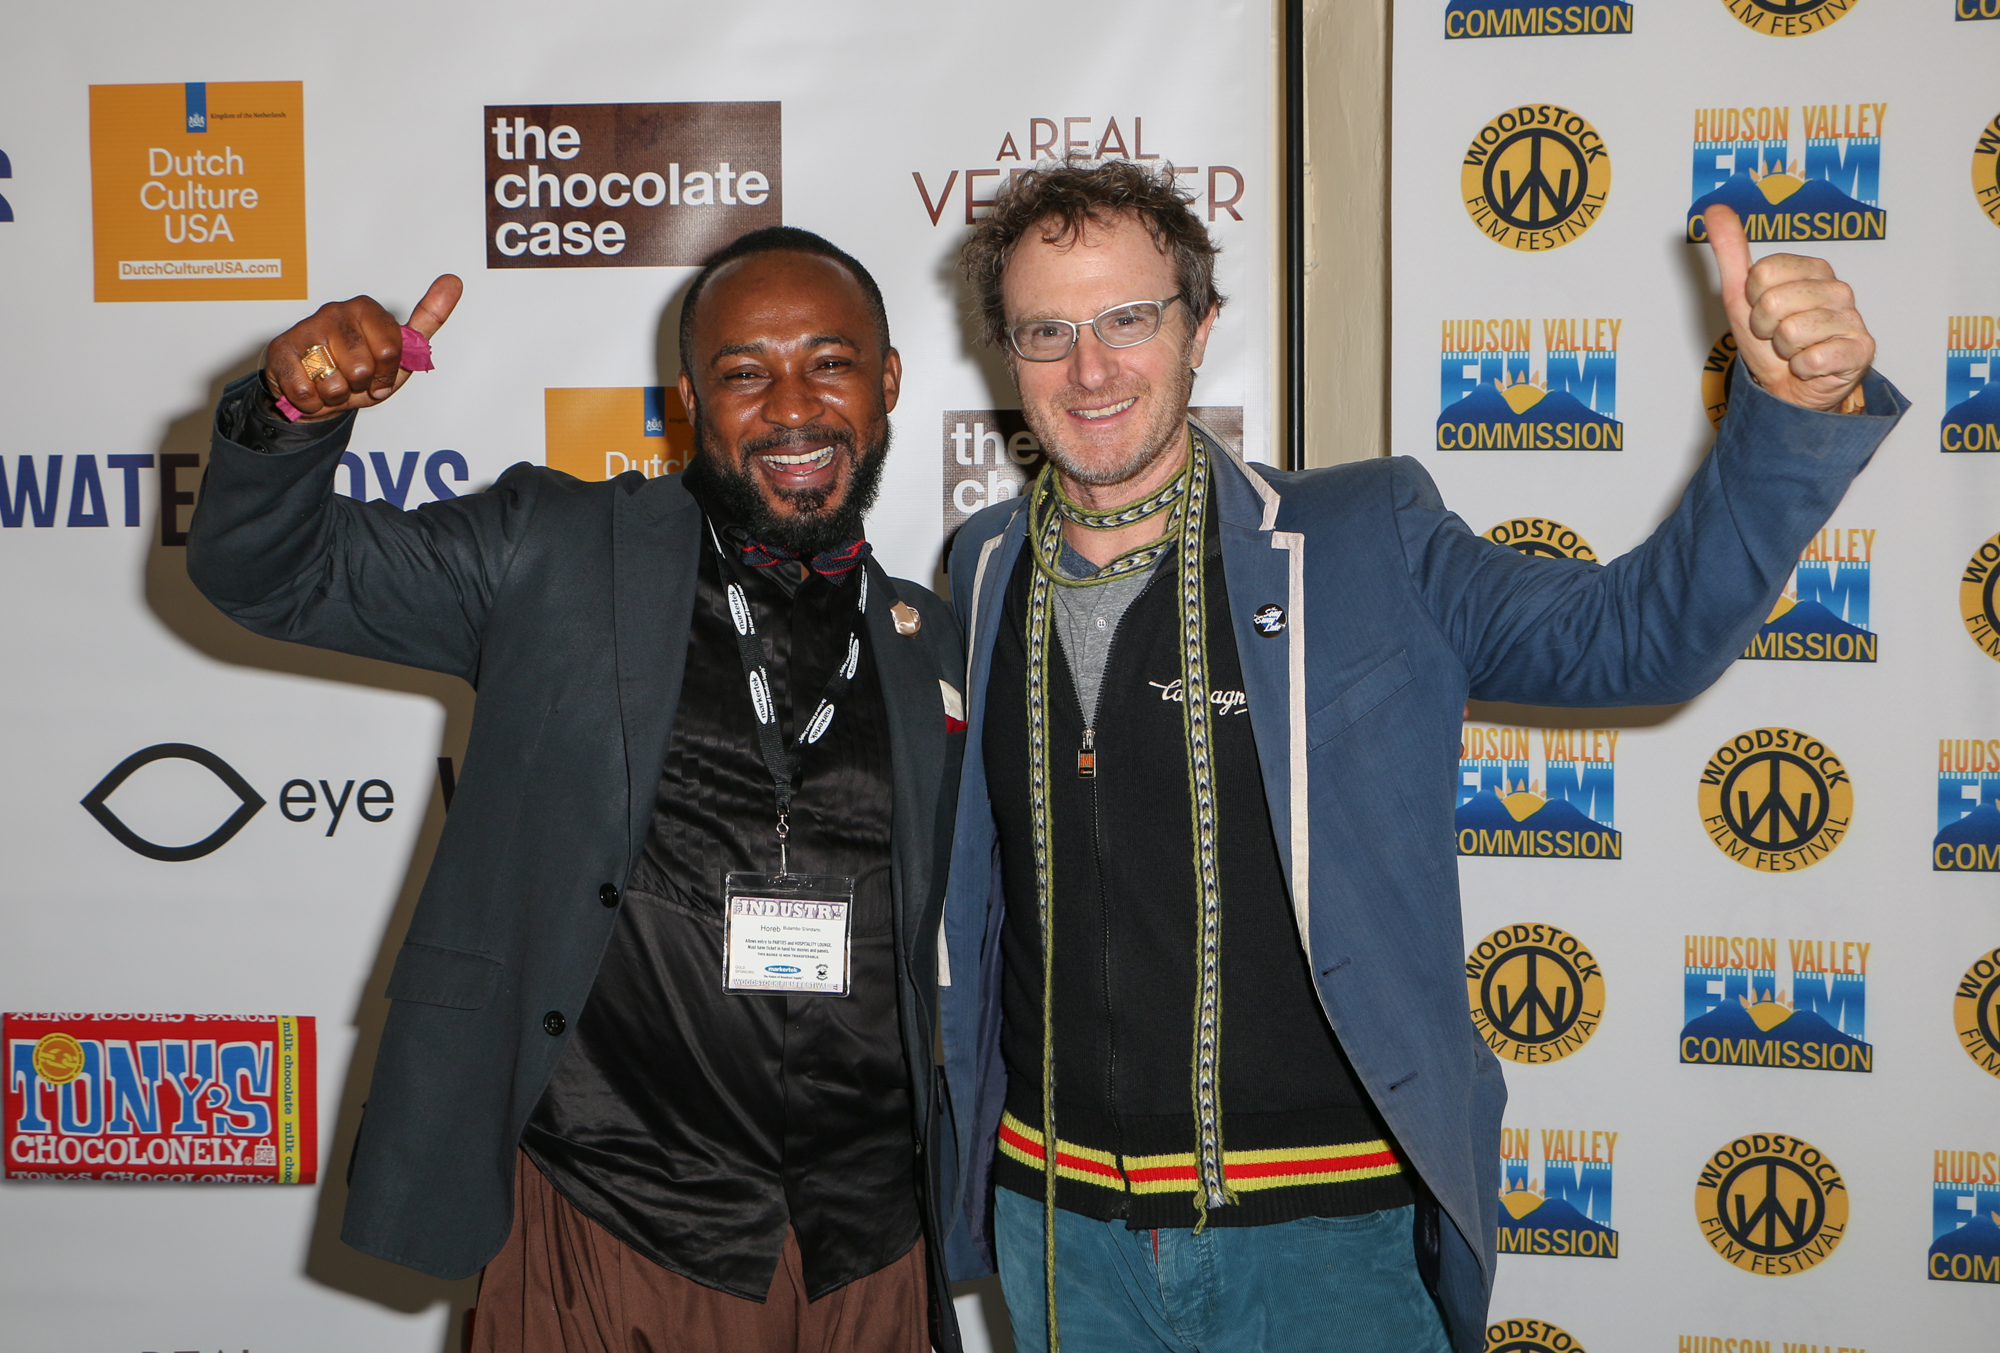 Horeb Bulambo Shindano (This Is Congo) and Ari Gold (Sway Lake) at the 2017 Woodstock Film Festival Filmmaker Party sponsored by Dutch Culture USA. Photo by: Eugene Devillamil